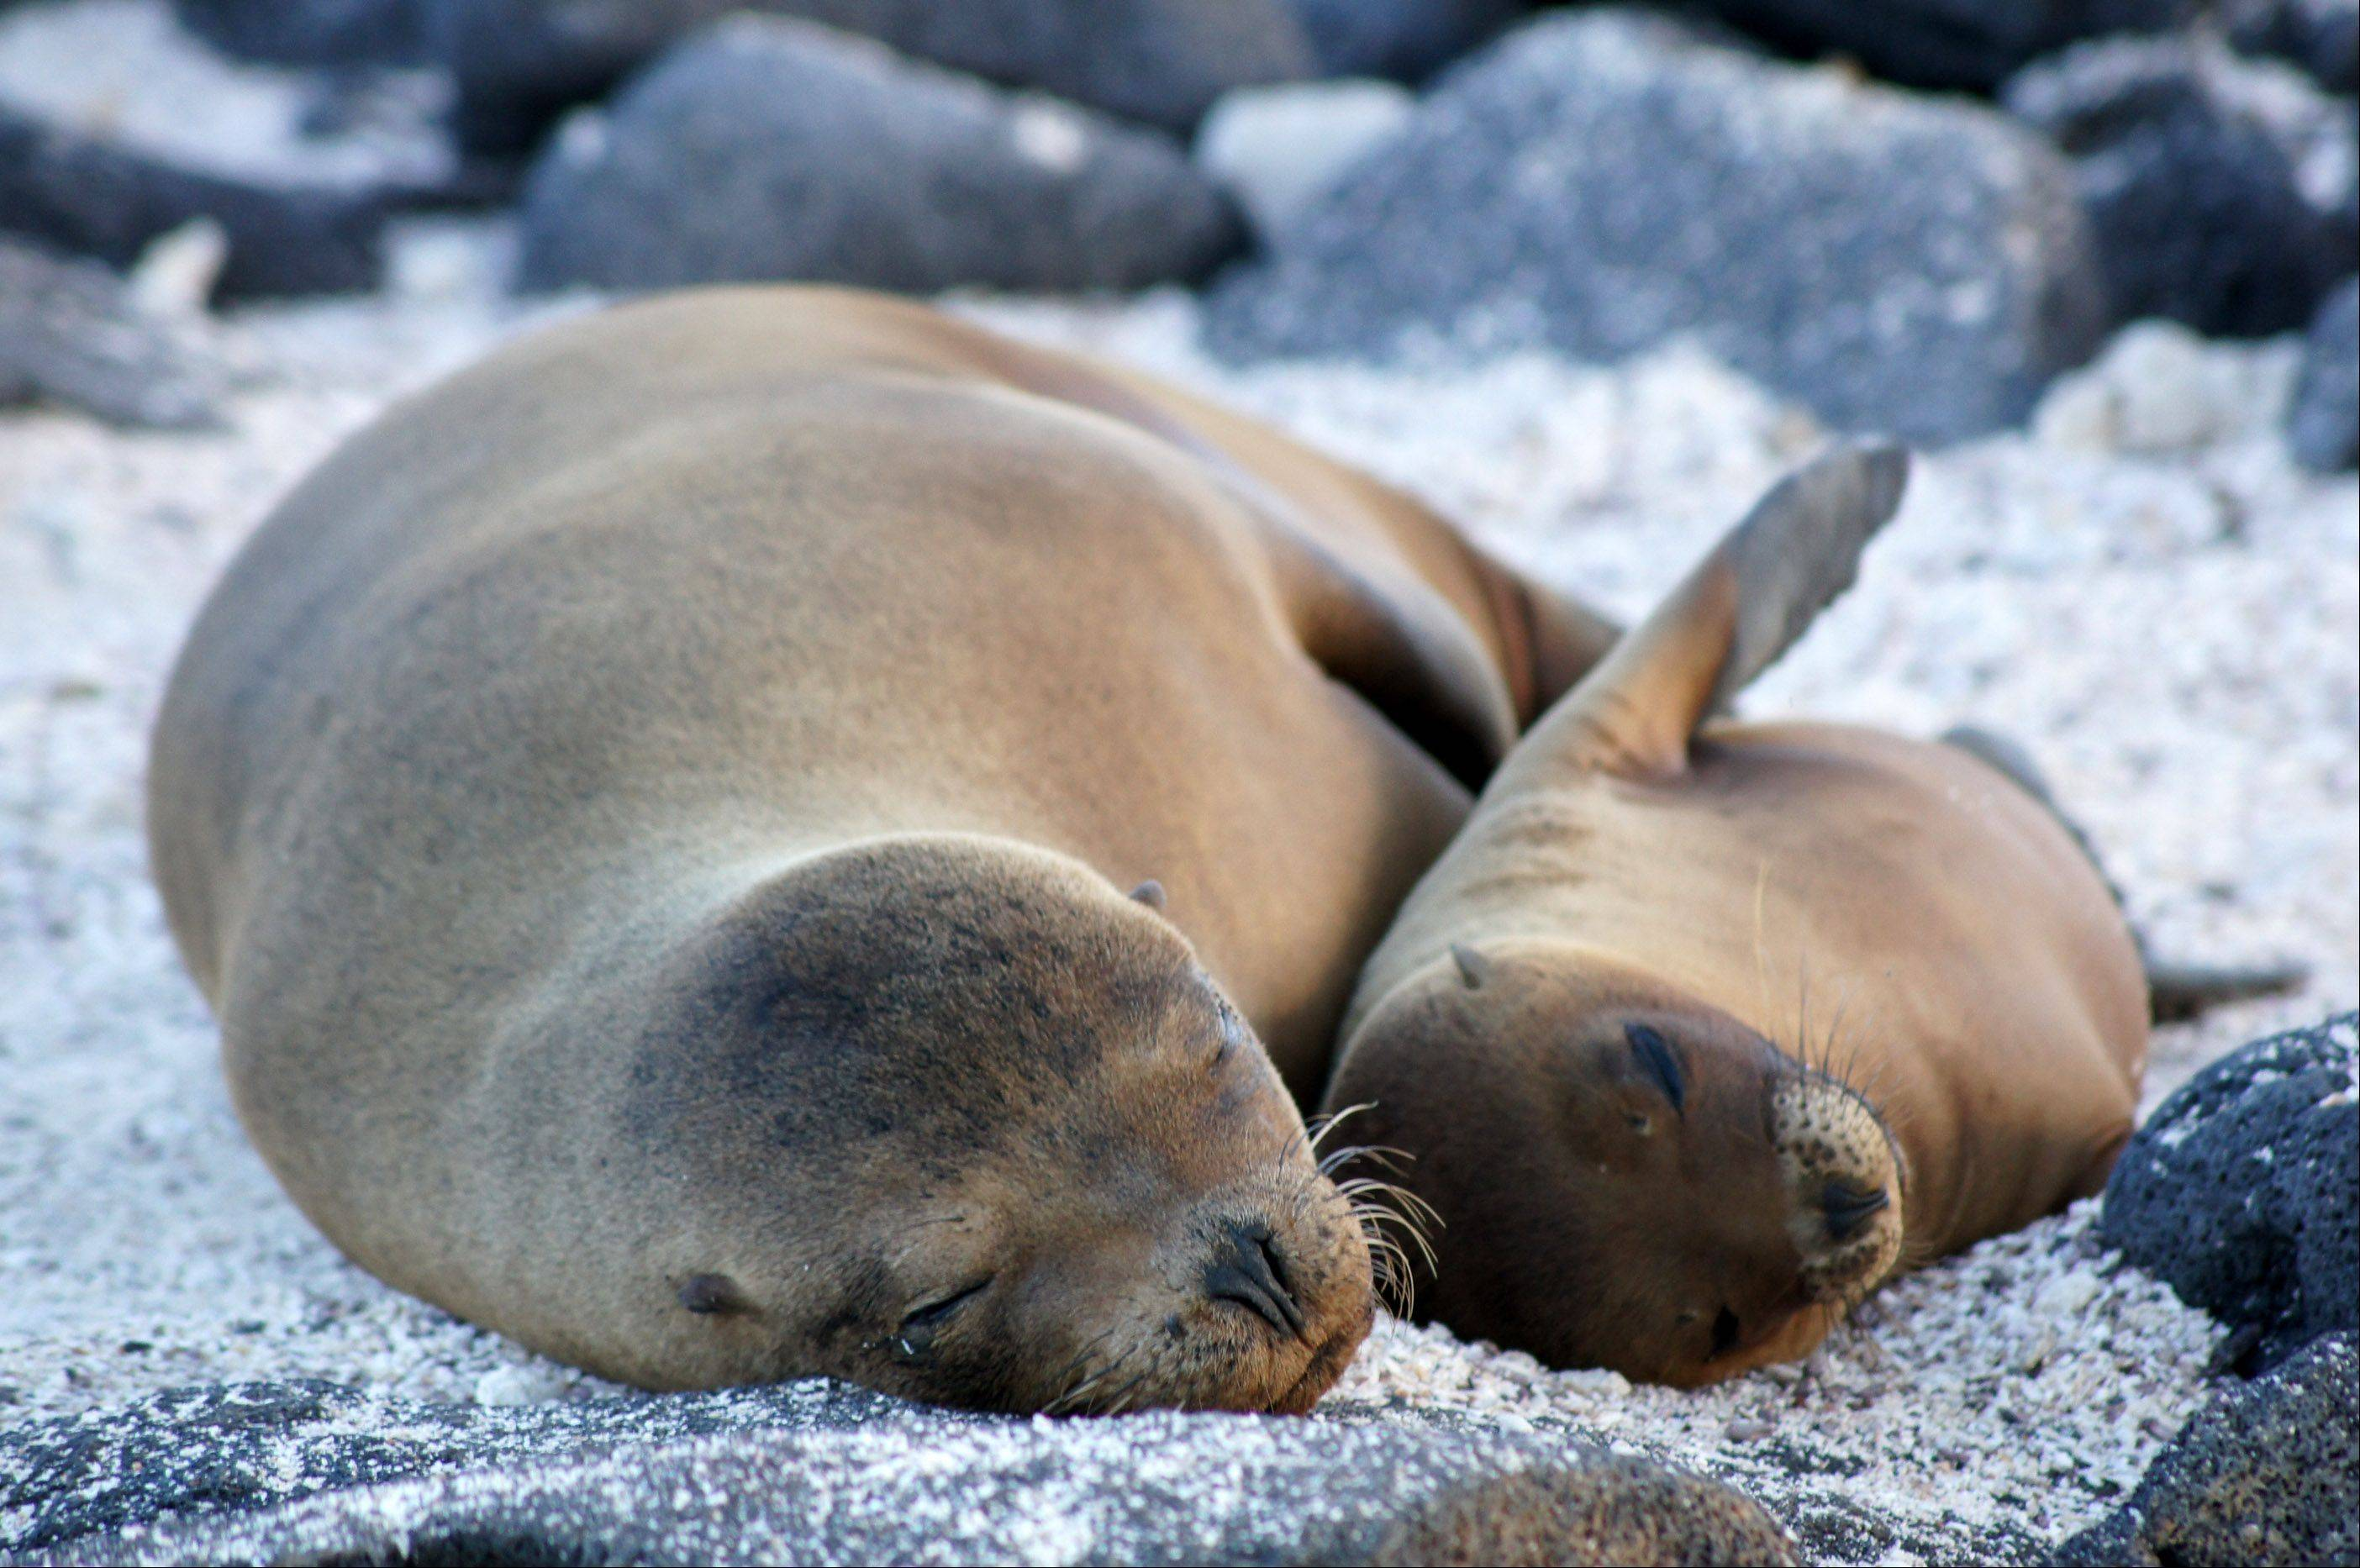 Deborah Solarski of Napervillephotographed these sea lions while on a 16-person Galápagos Islands cruise.